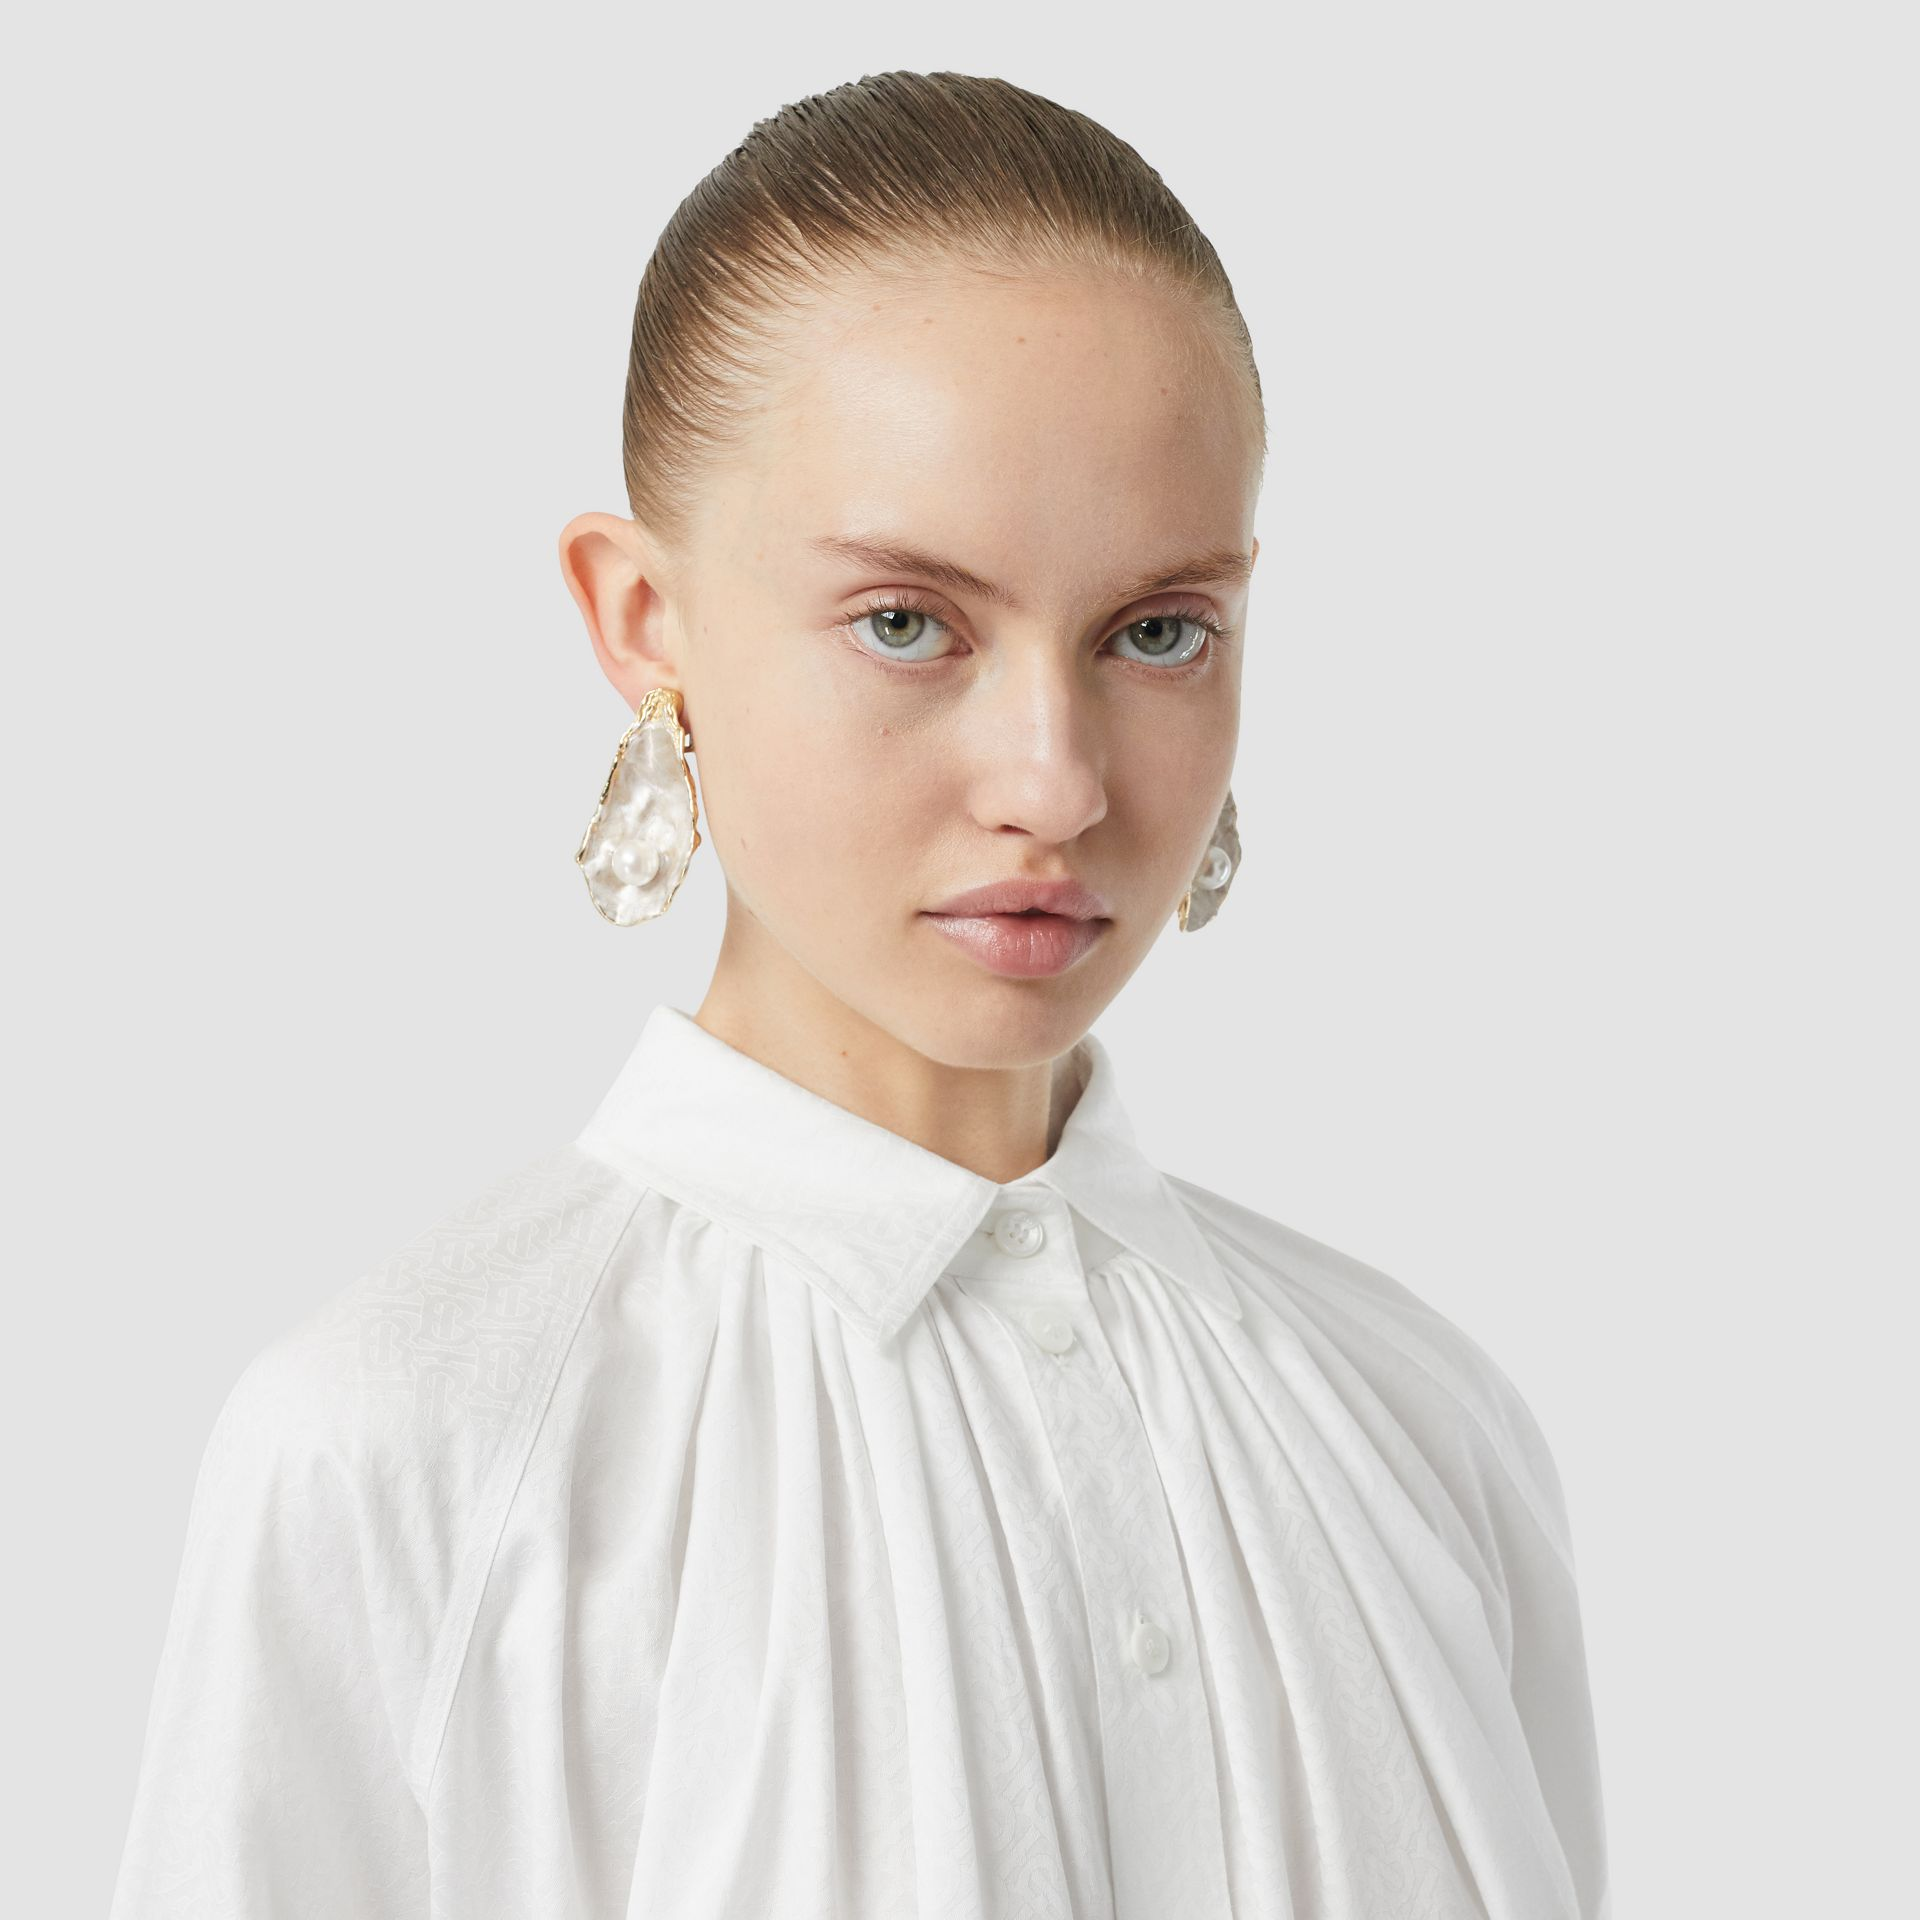 Monogram Cotton Jacquard Oversized Shirt in Optic White - Women | Burberry - gallery image 7